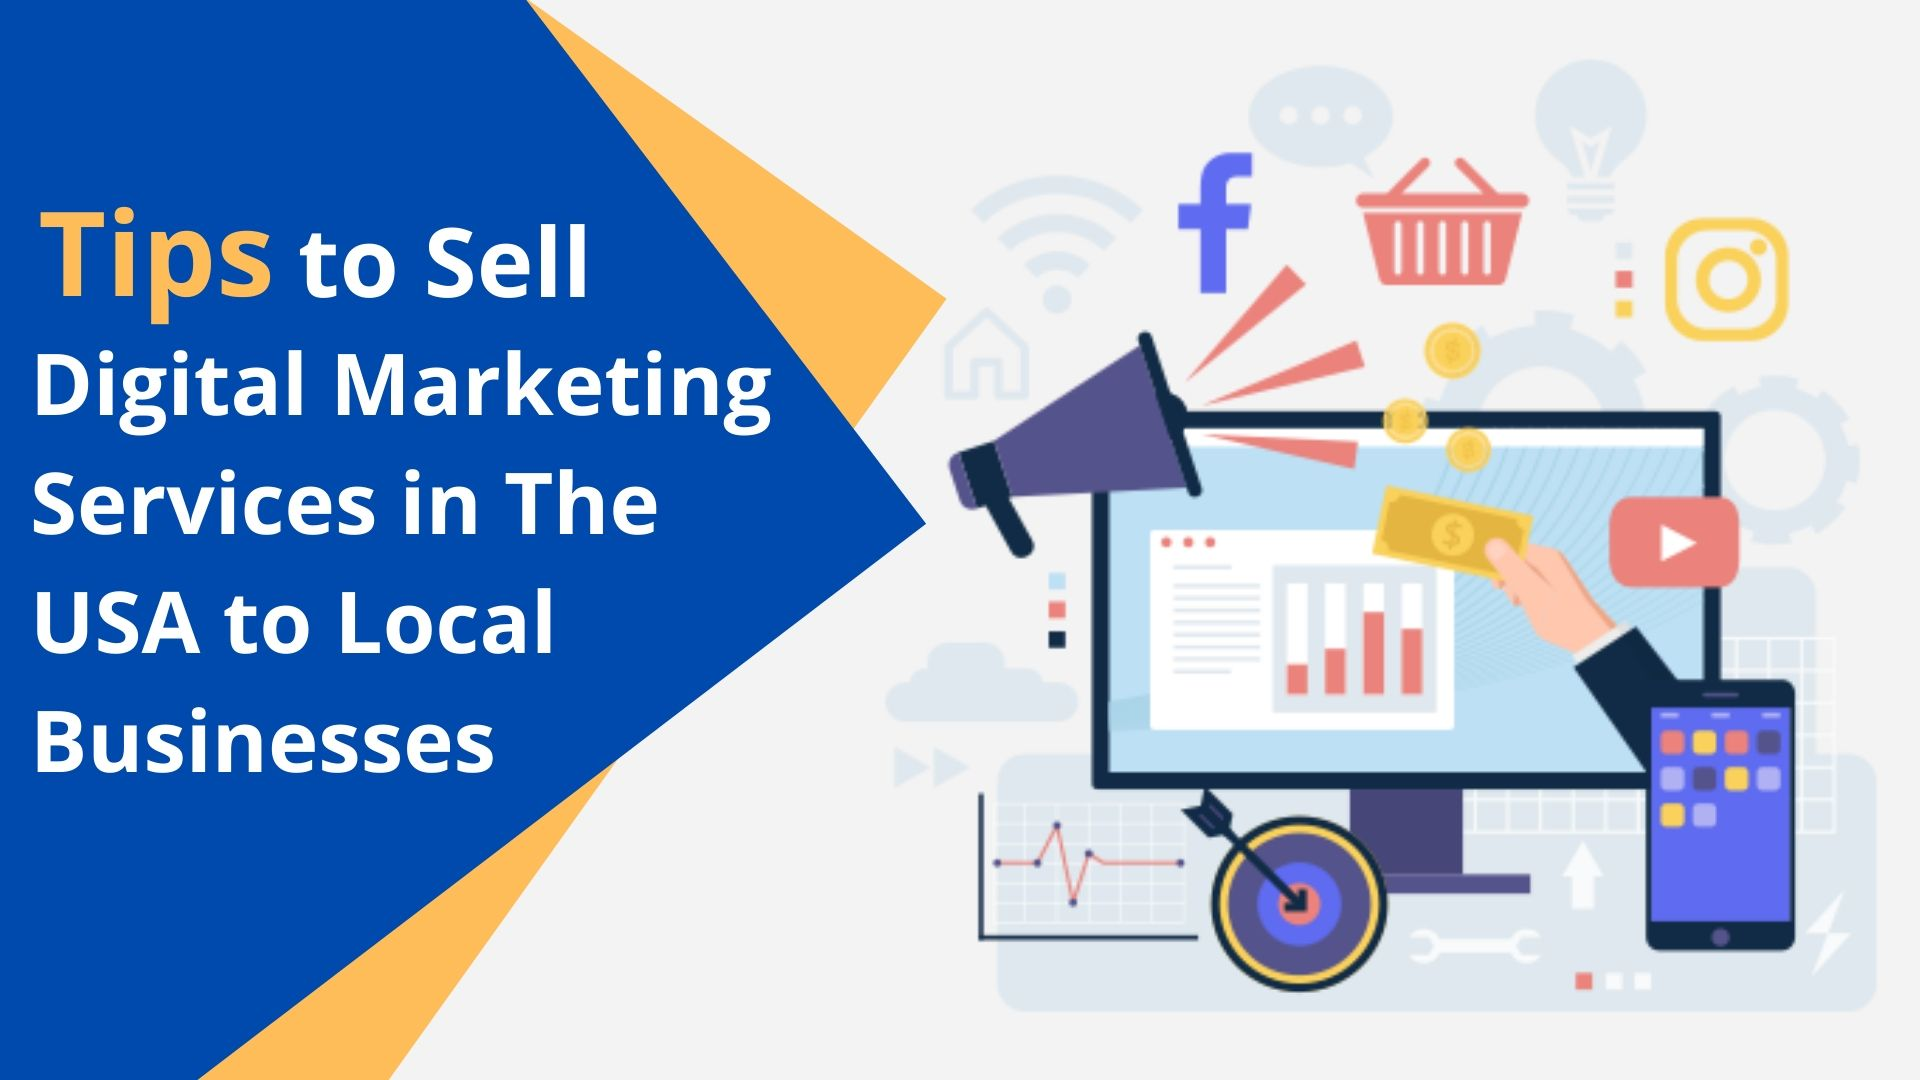 Tips to Sell Digital Marketing Services in the USA to Local Businesses